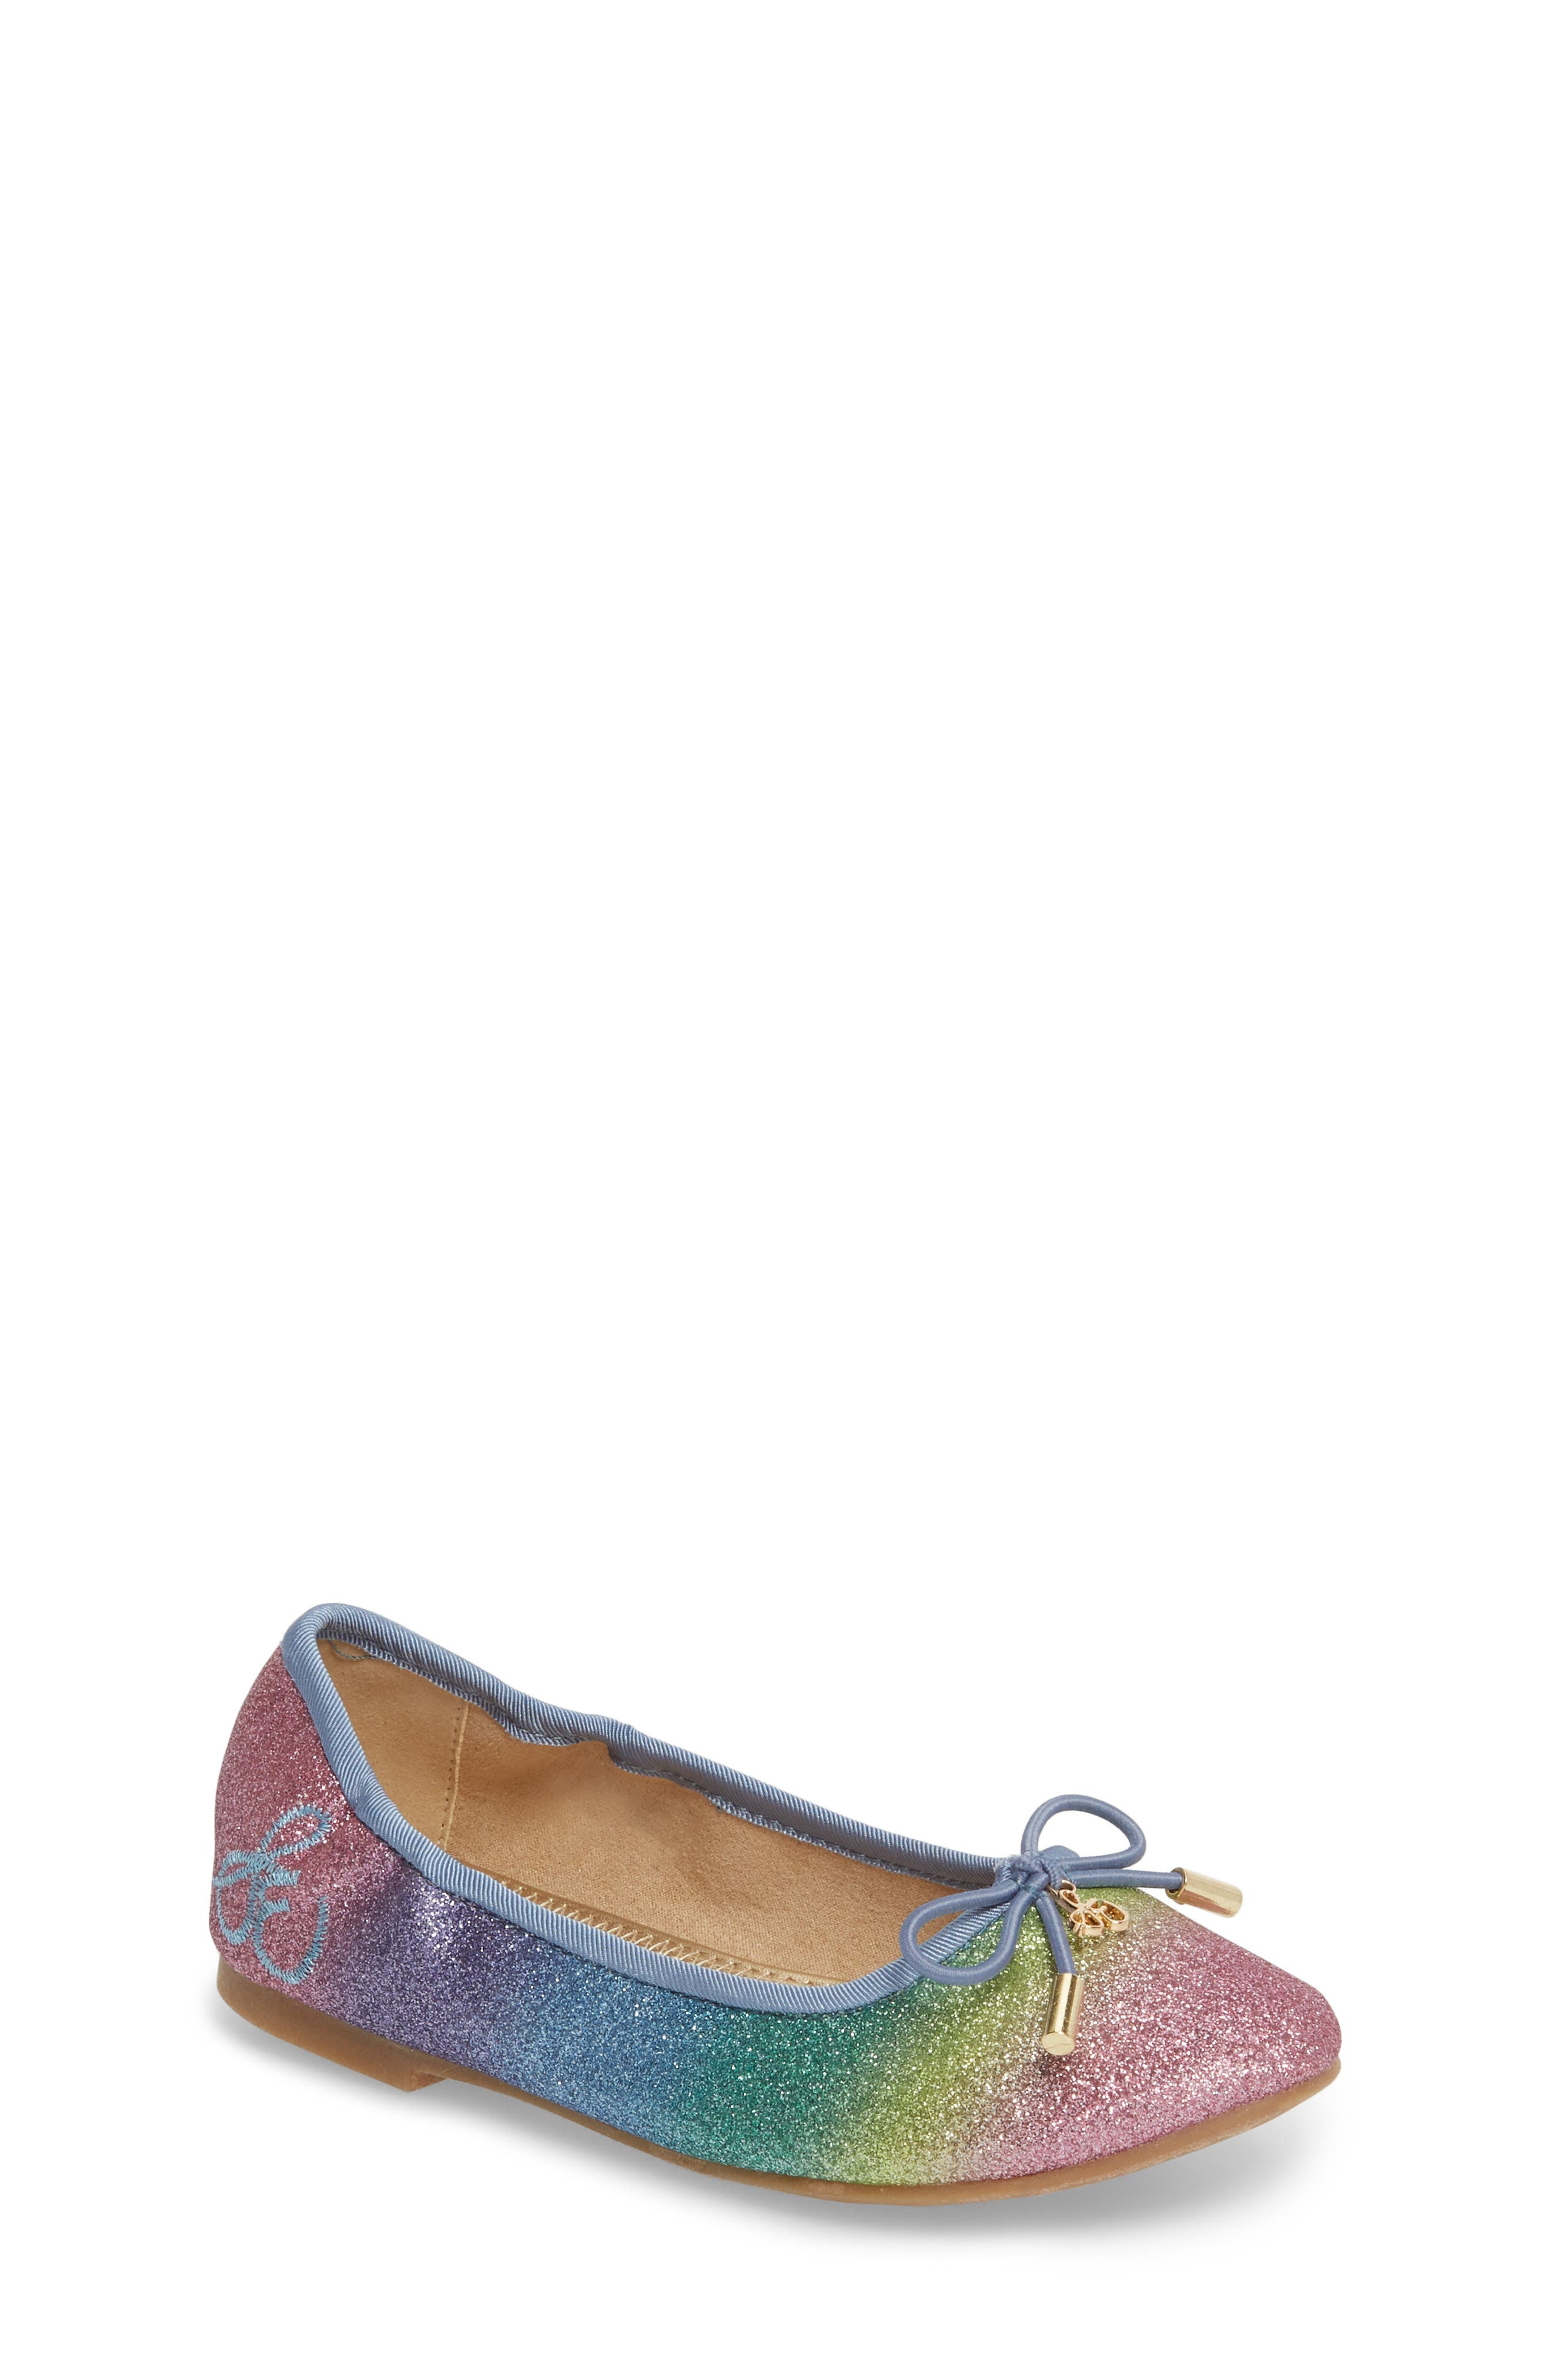 Felicia Glitter Ballet Flat,                         Main,                         color, Rainbow Ombre